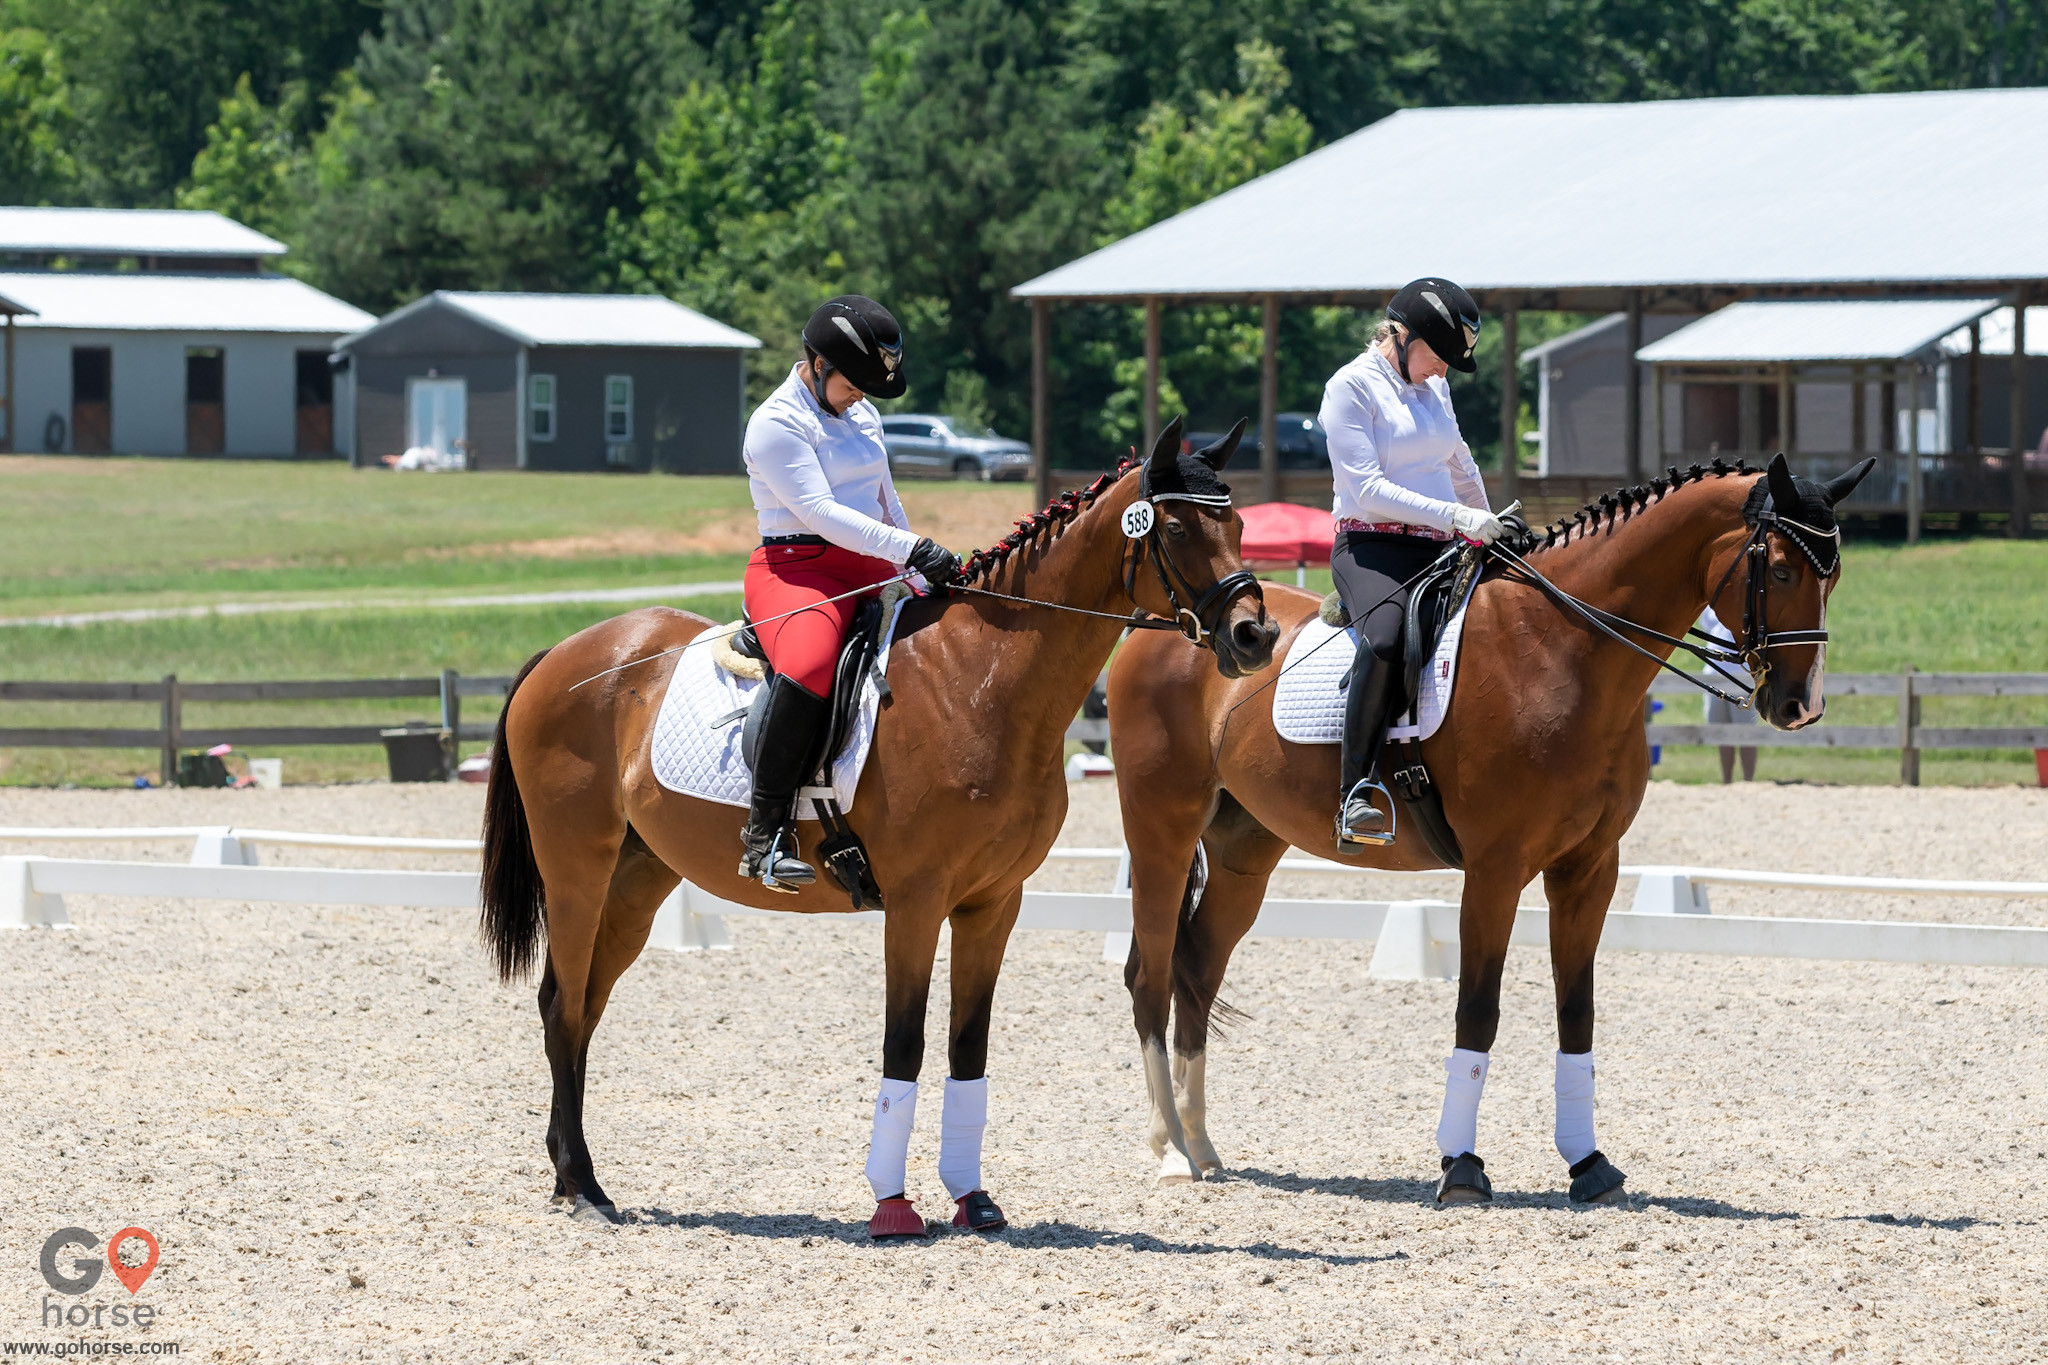 SJ Equestrian Horse stables in Co Rd 51 AL 3